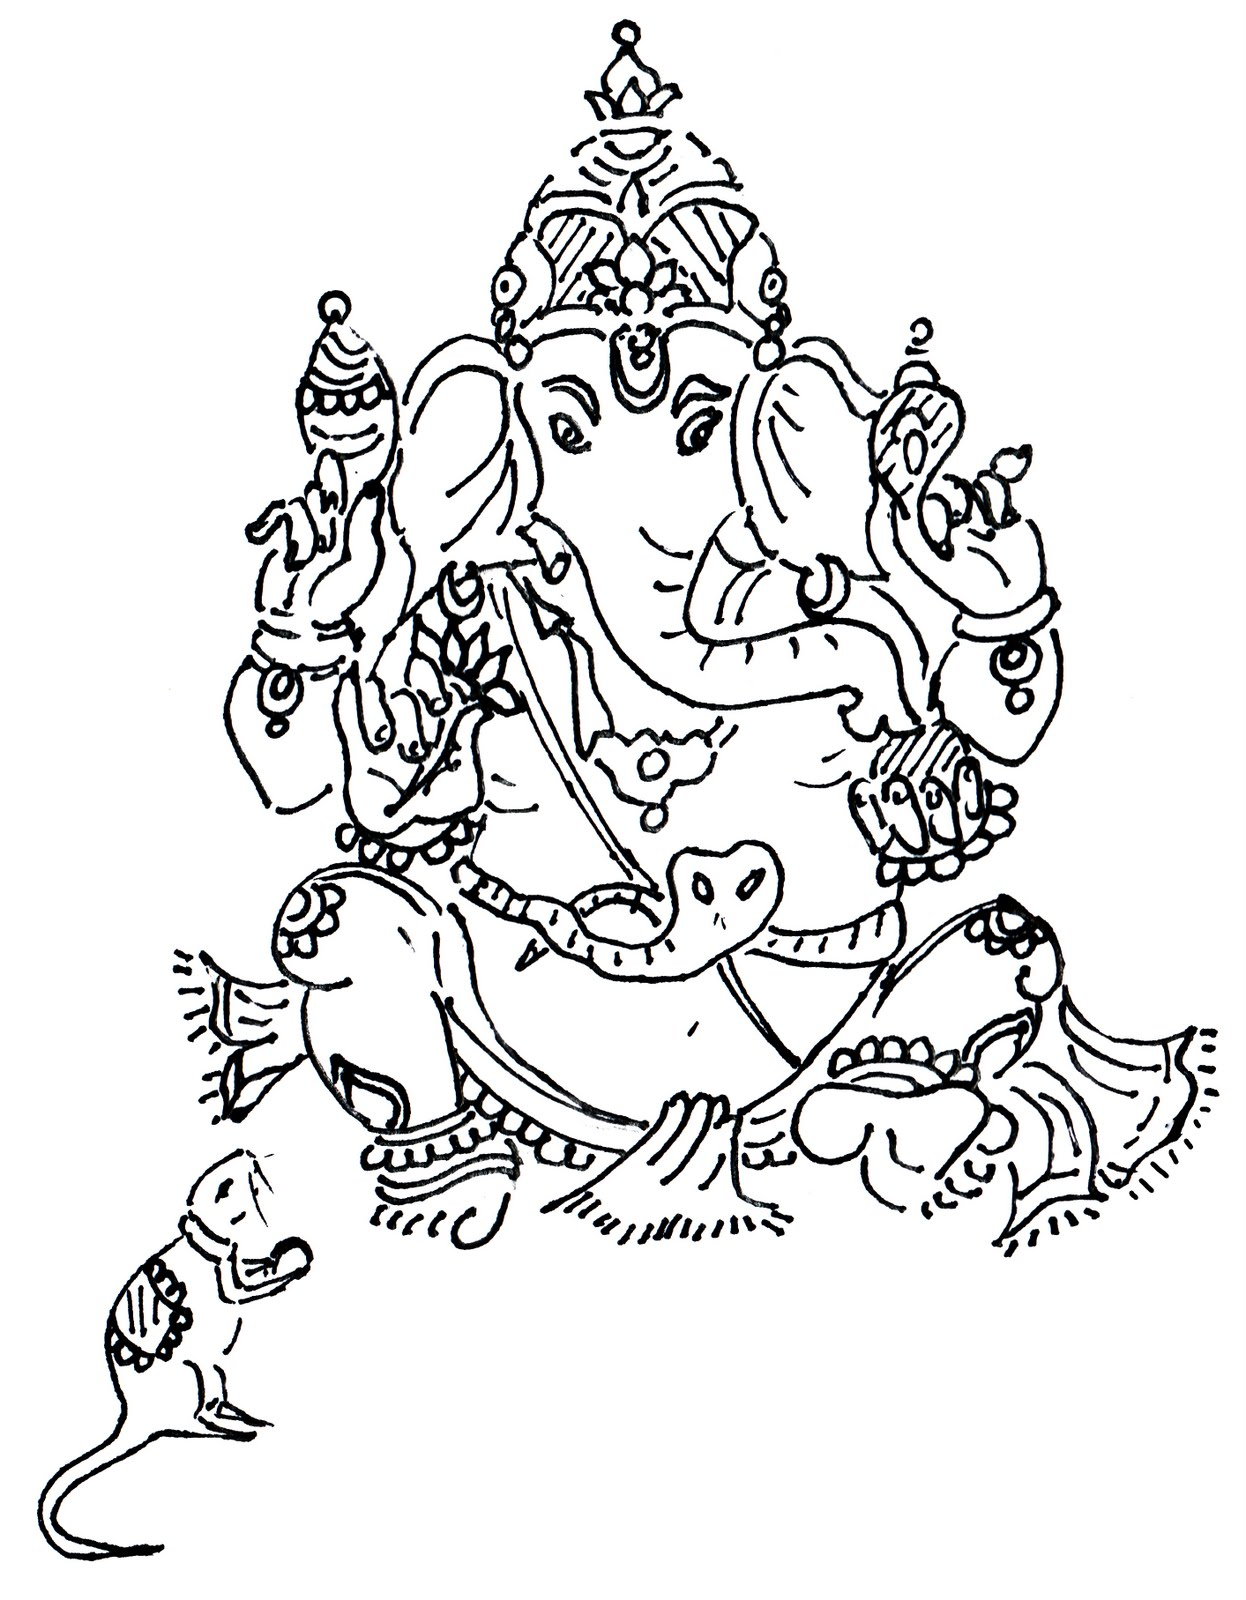 Free Ganesh Drawing, Download Free Clip Art, Free Clip Art